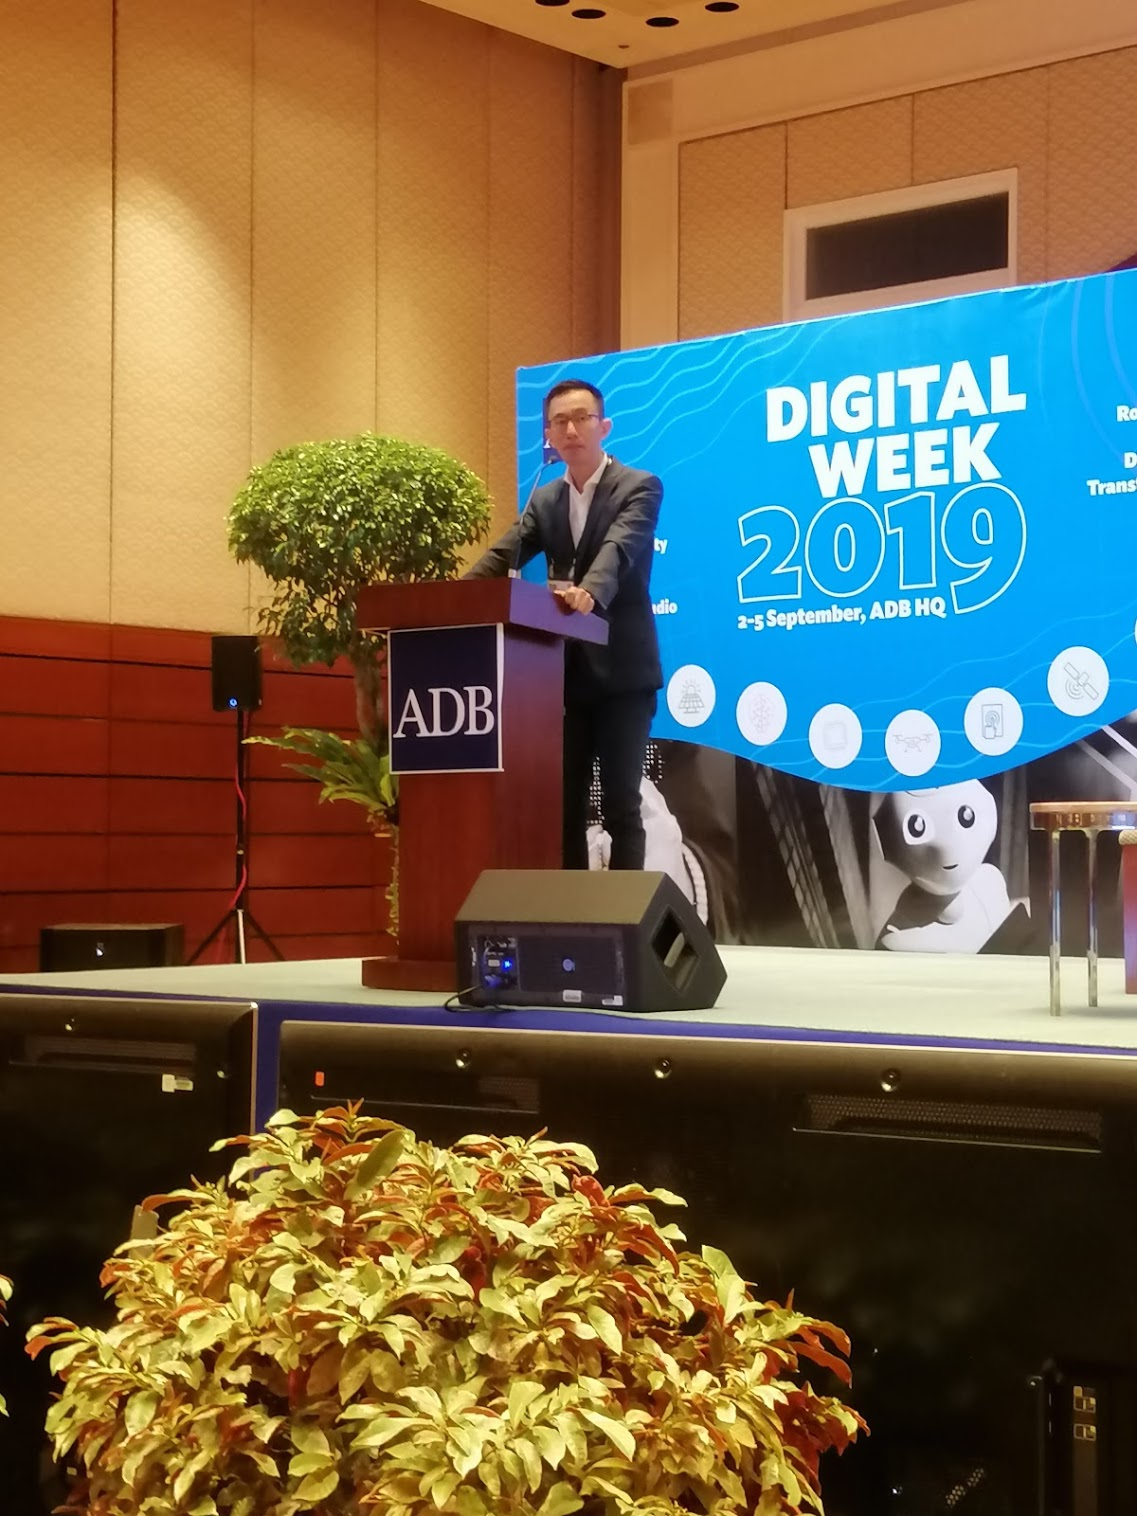 """10:08 a.m. - """"As we are digitized, we are connected to more and more people...""""Vincent Loy, Assistant Managing Director from the Monetary Authority of Singapore, tackles Cybersecurity and Privacy in the Digital Era"""